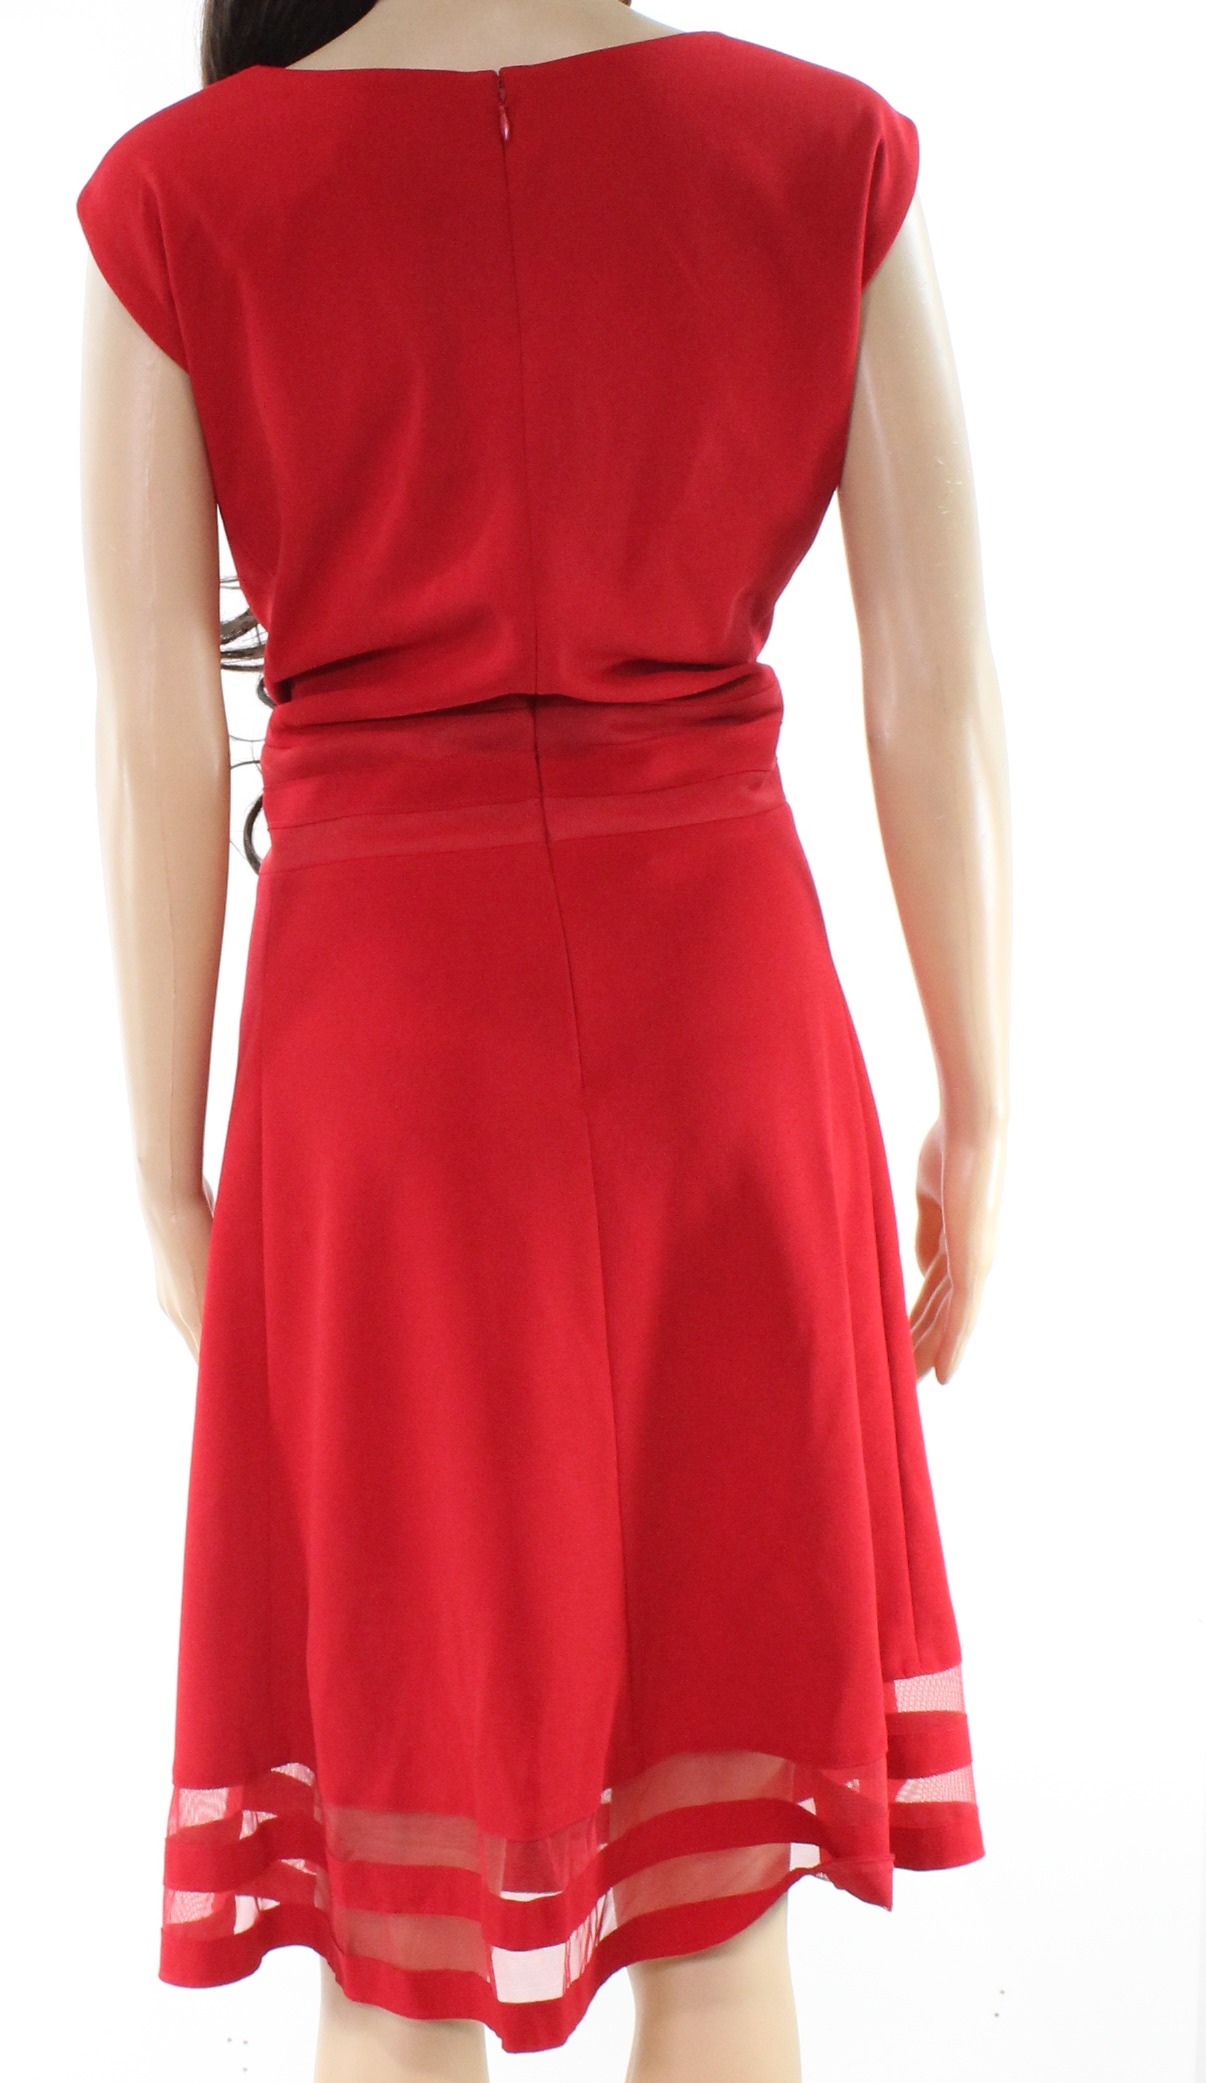 f820846a278d Details about Calvin Klein NEW Red Womens Size 22W Plus Fit   Flare Shift  Dress  99 077